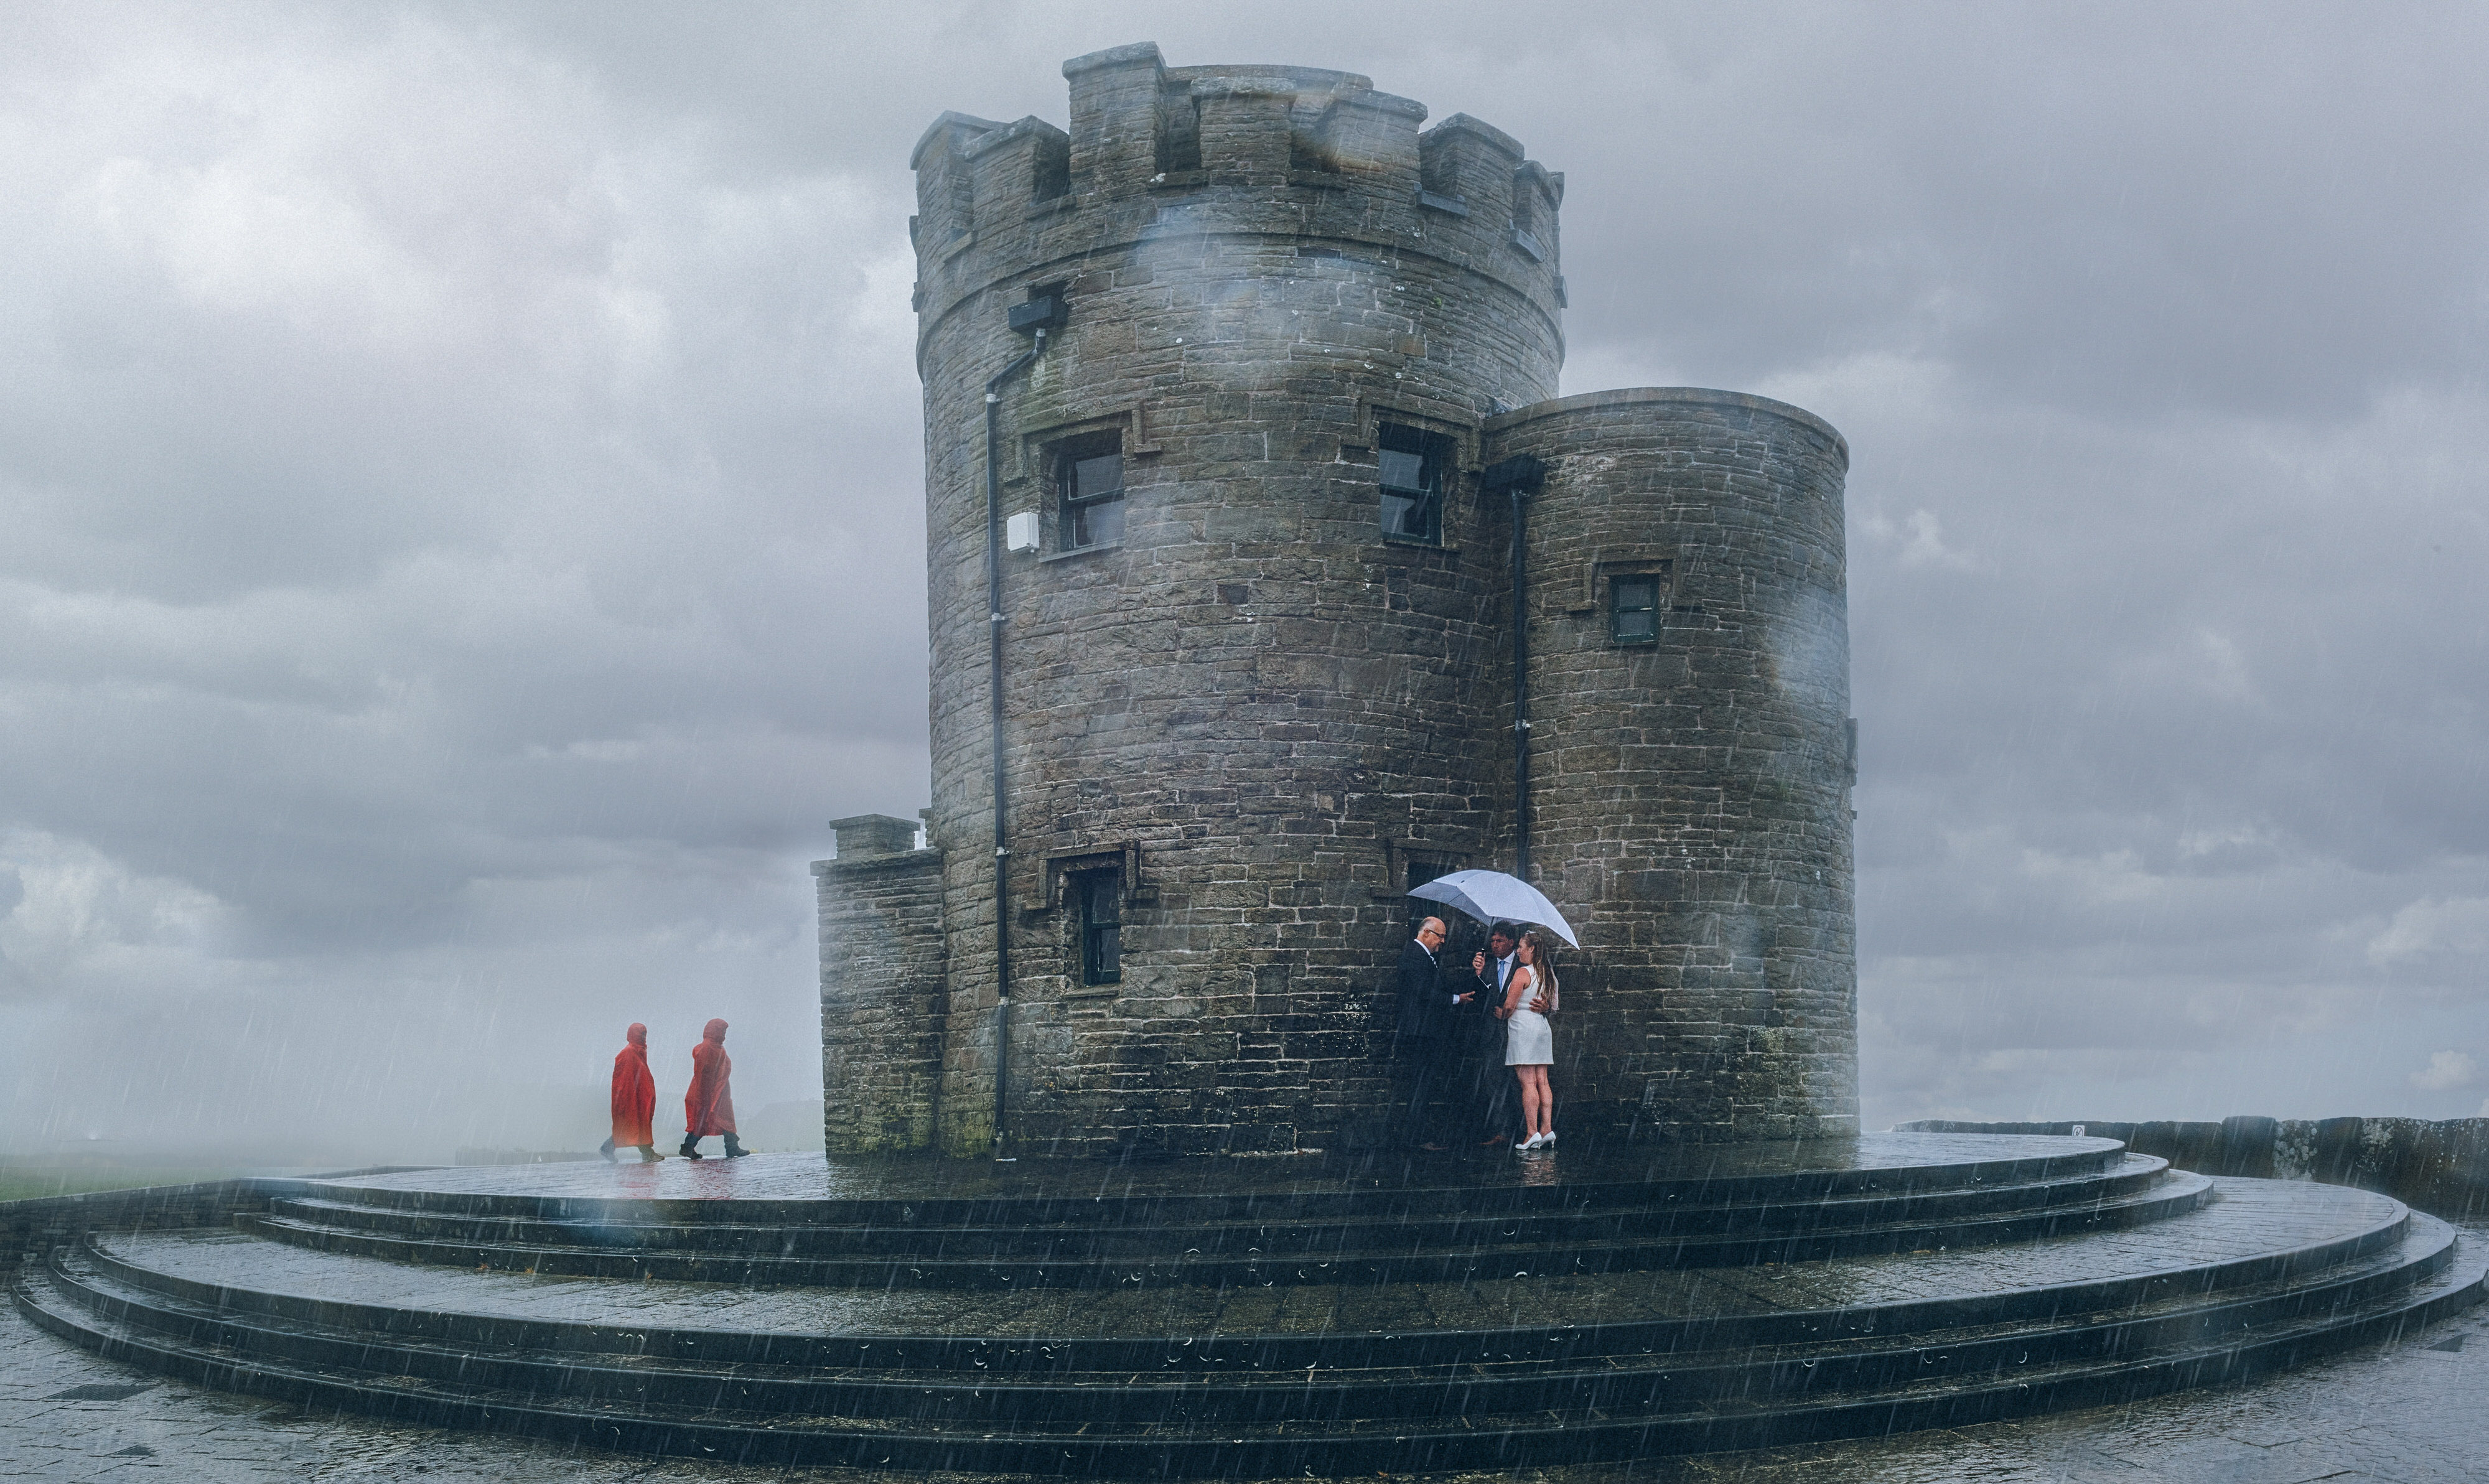 Couple under umbrella at castle - photo by John Gillooley